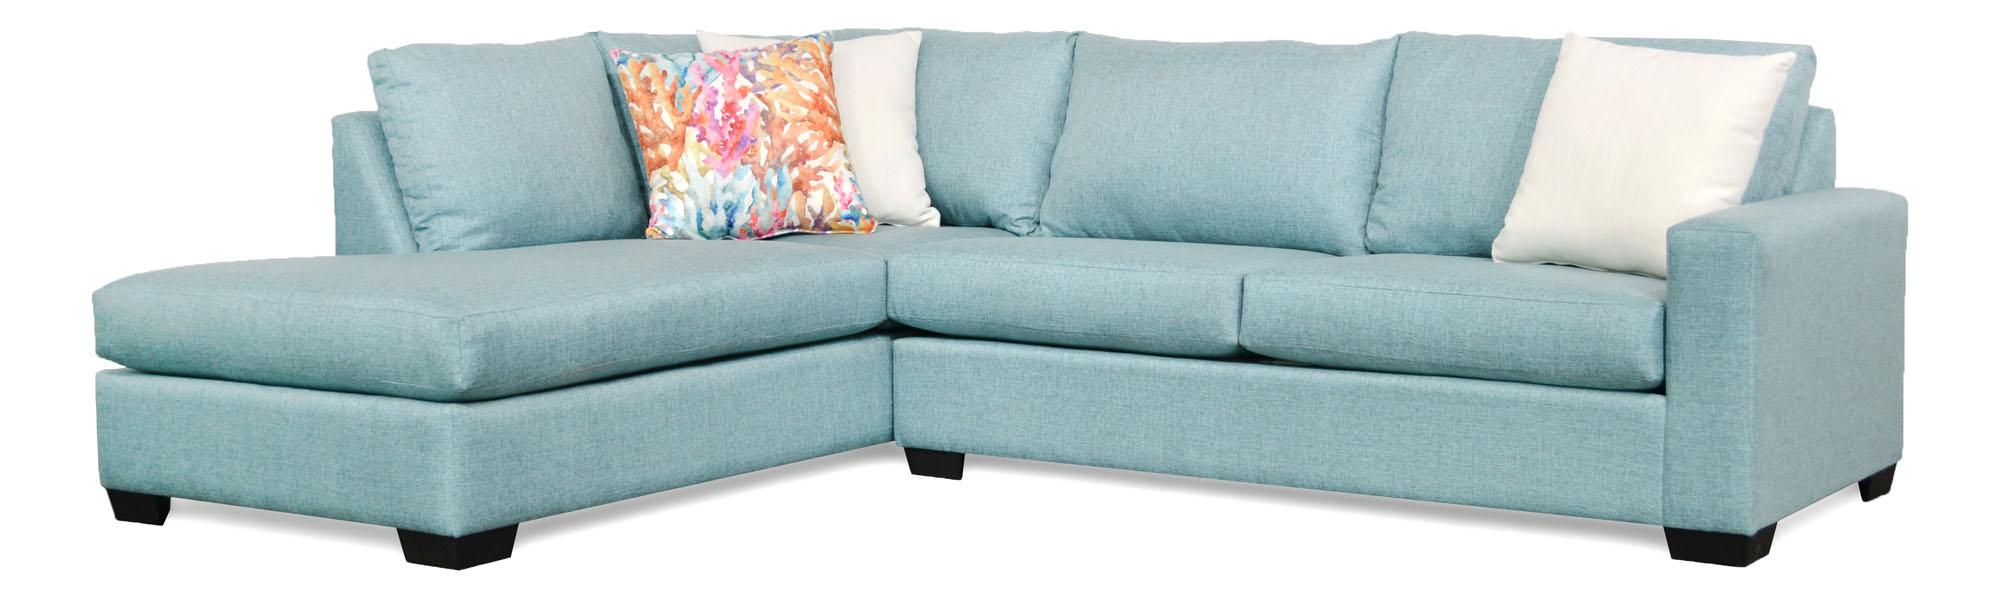 750 Hannah Sectional - Choice of Colors $825.99